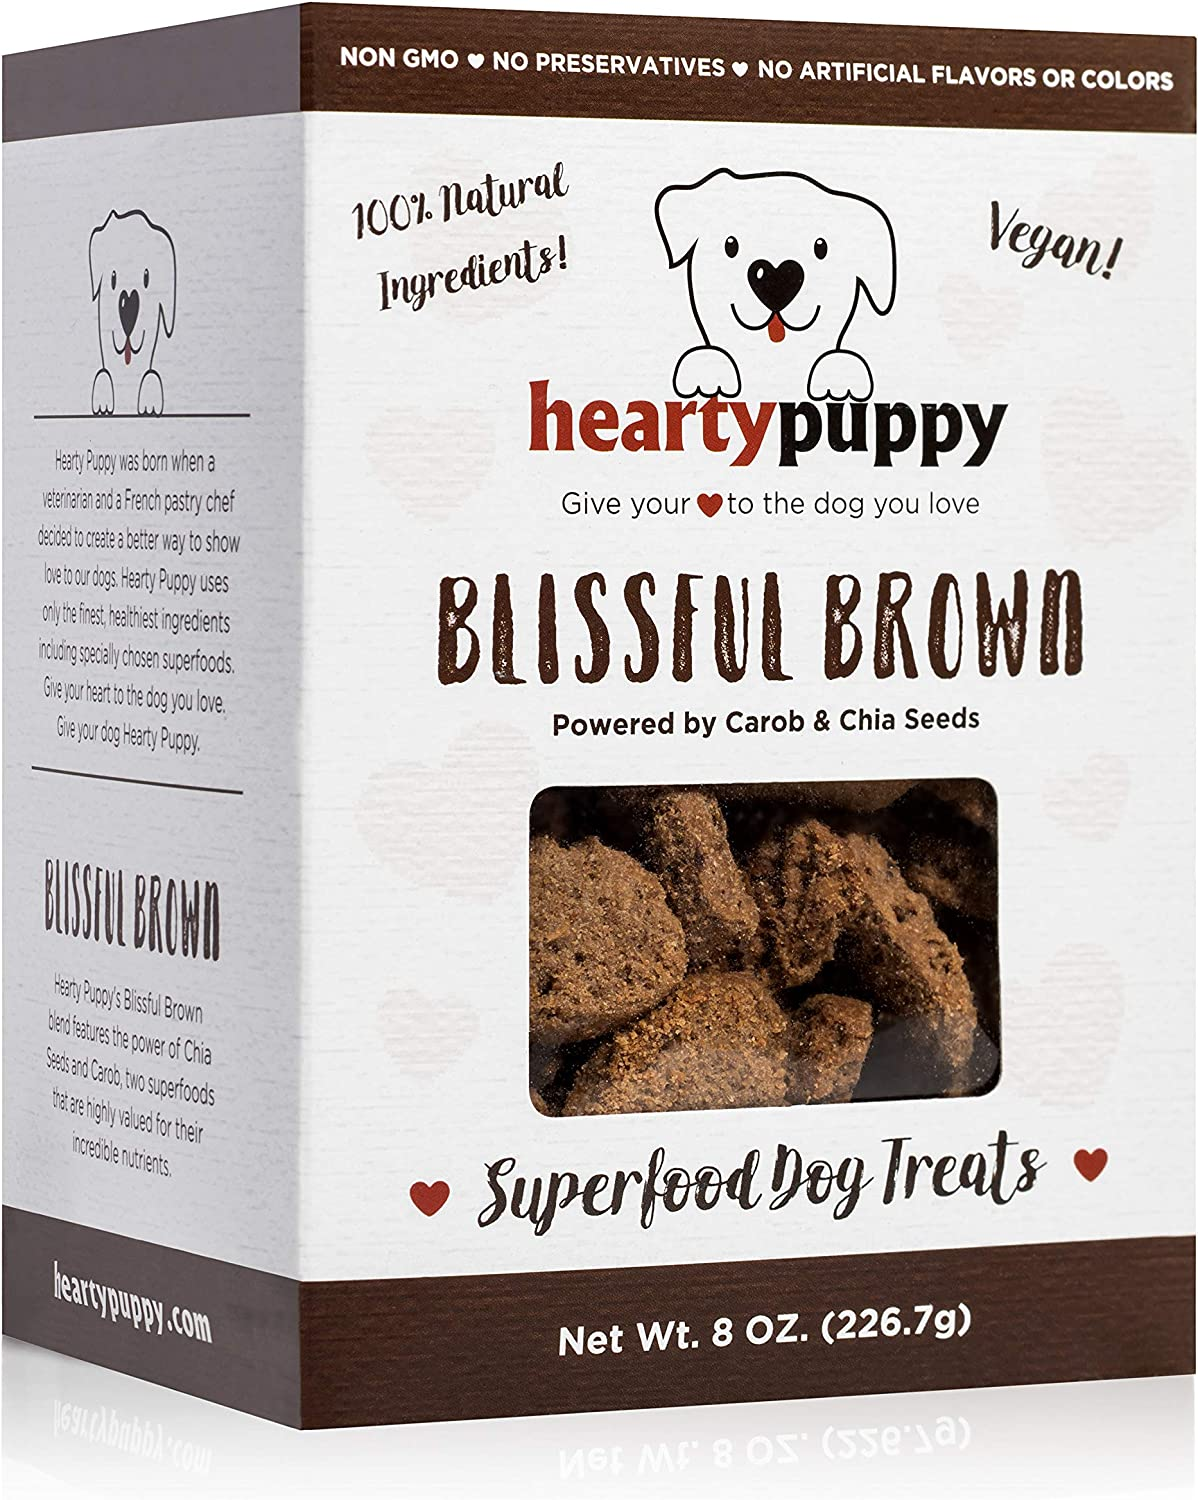 HEARTY PUPPY Vegan Superfood Dog Treats, 100% Natural Human Grade Ingredients, Non GMO, No Artificial Flavors, Colors or Preservatives